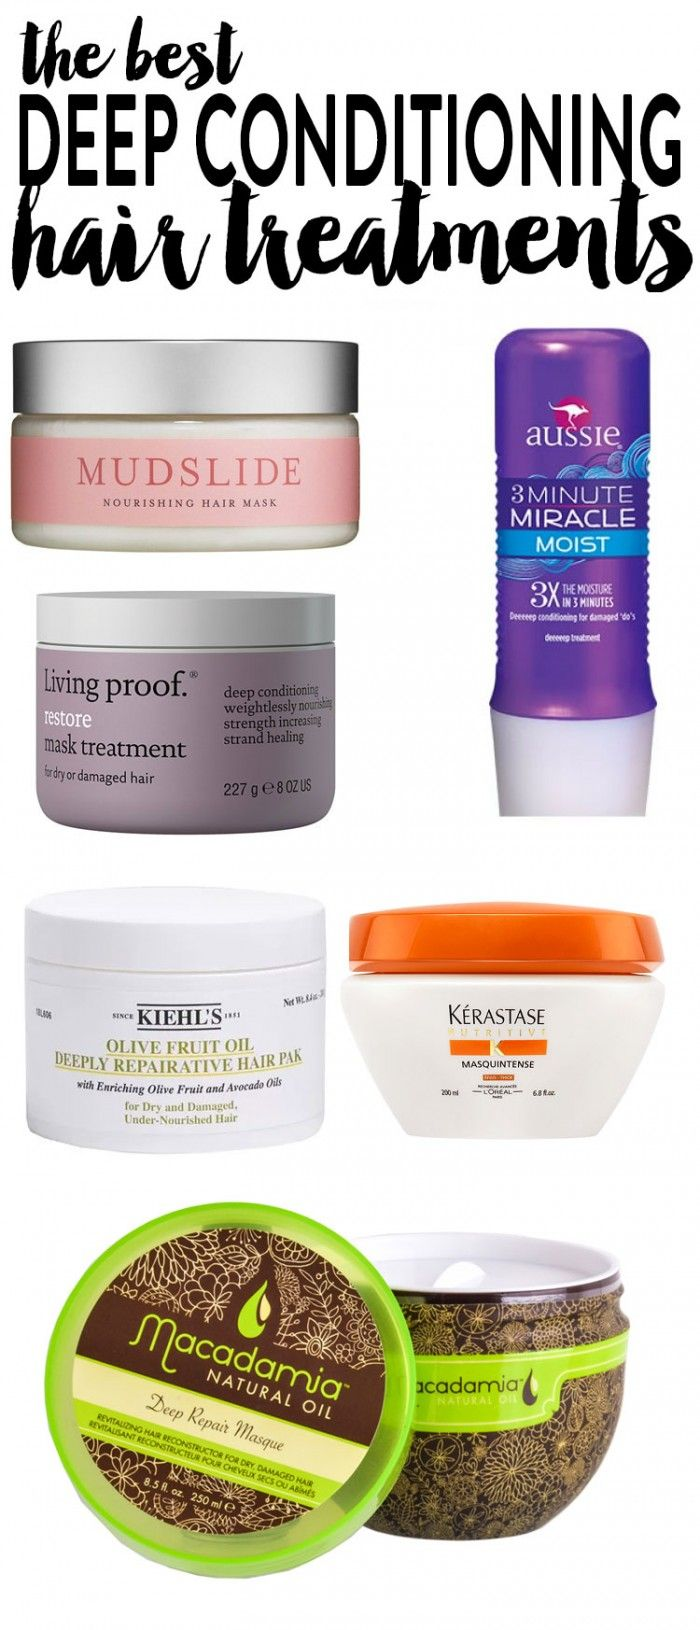 The Best Deep Conditioning Hair Treatments